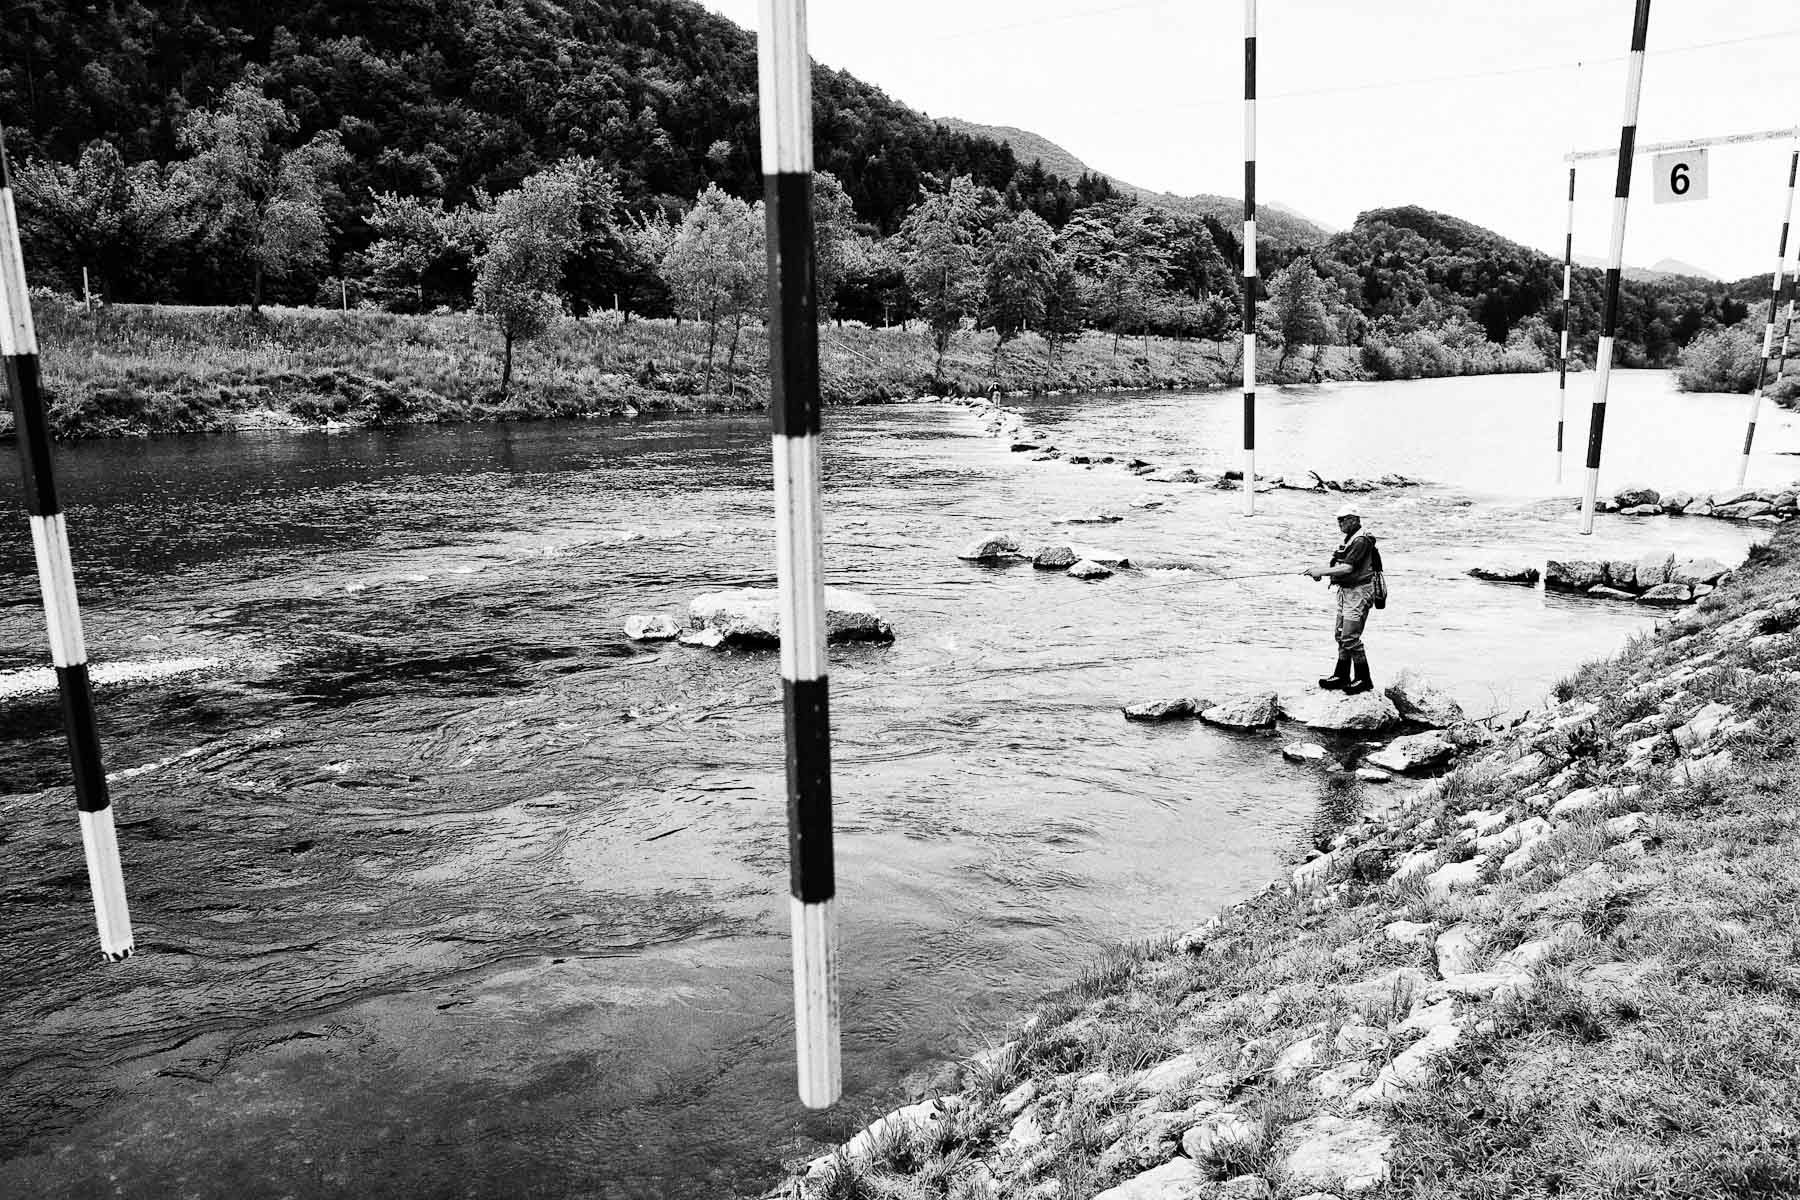 Branko Puncuh competes at the National Fly Fishing Championship competition in Celje, Slovenia, May 8, 2011.